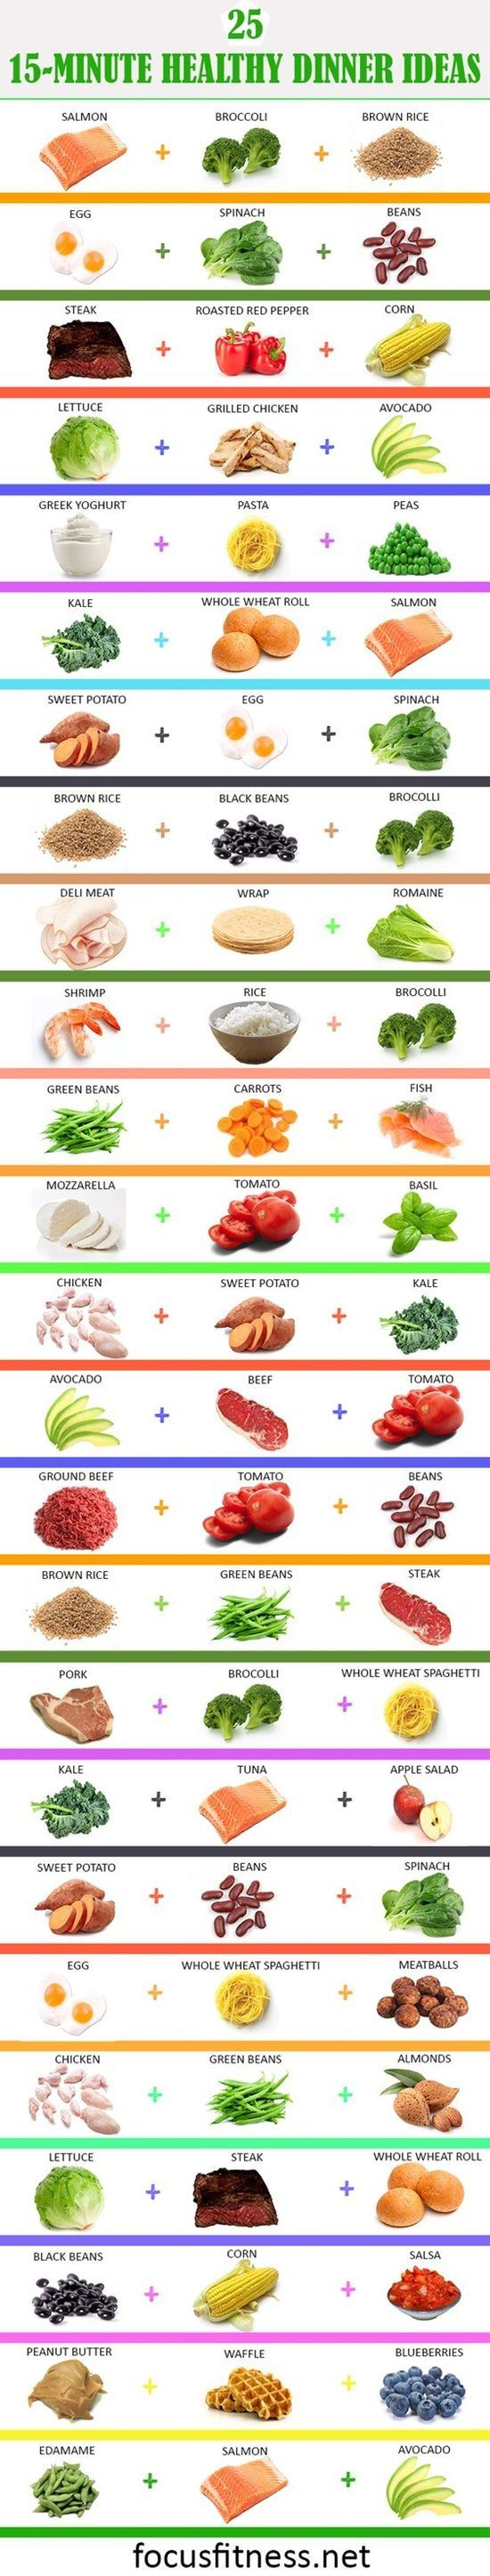 Healthy Dinner Ideas For Weight Loss That Take Less Than 15 Minutes To Make